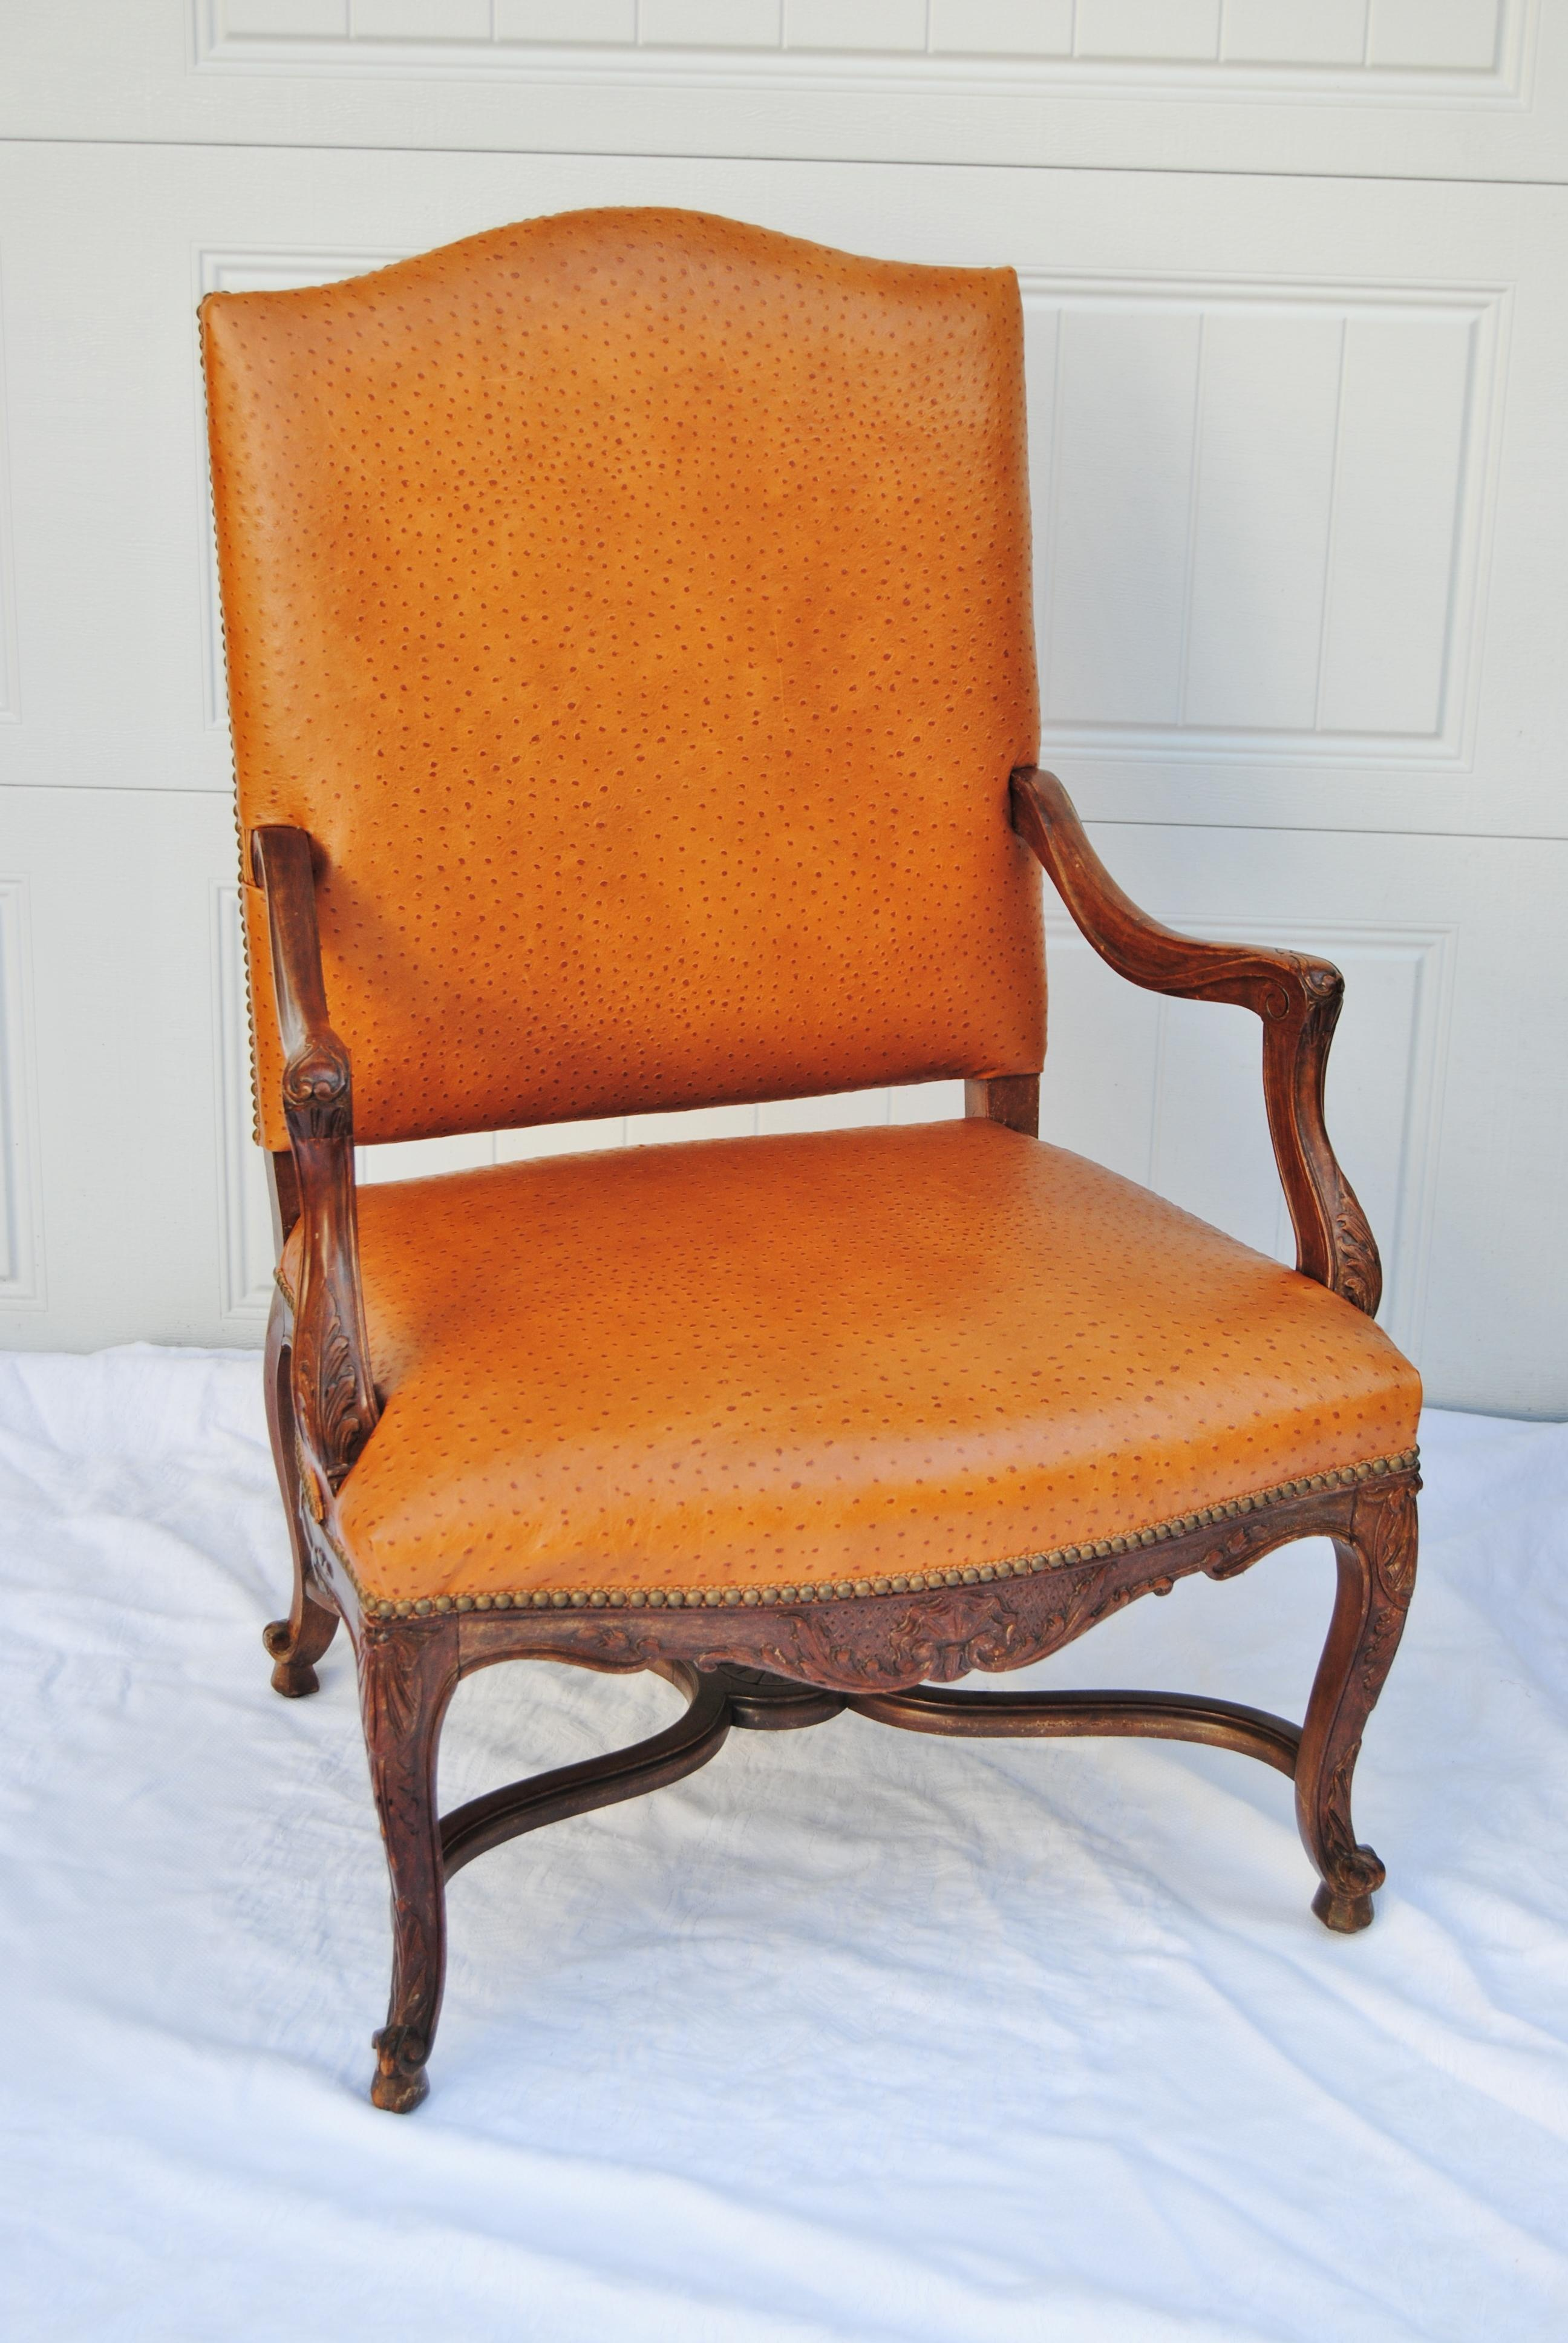 Vintage French Fauteuil Newly Upholstered In Edelman Faux Cowhide Leather.  Chair Is Finished With Antique